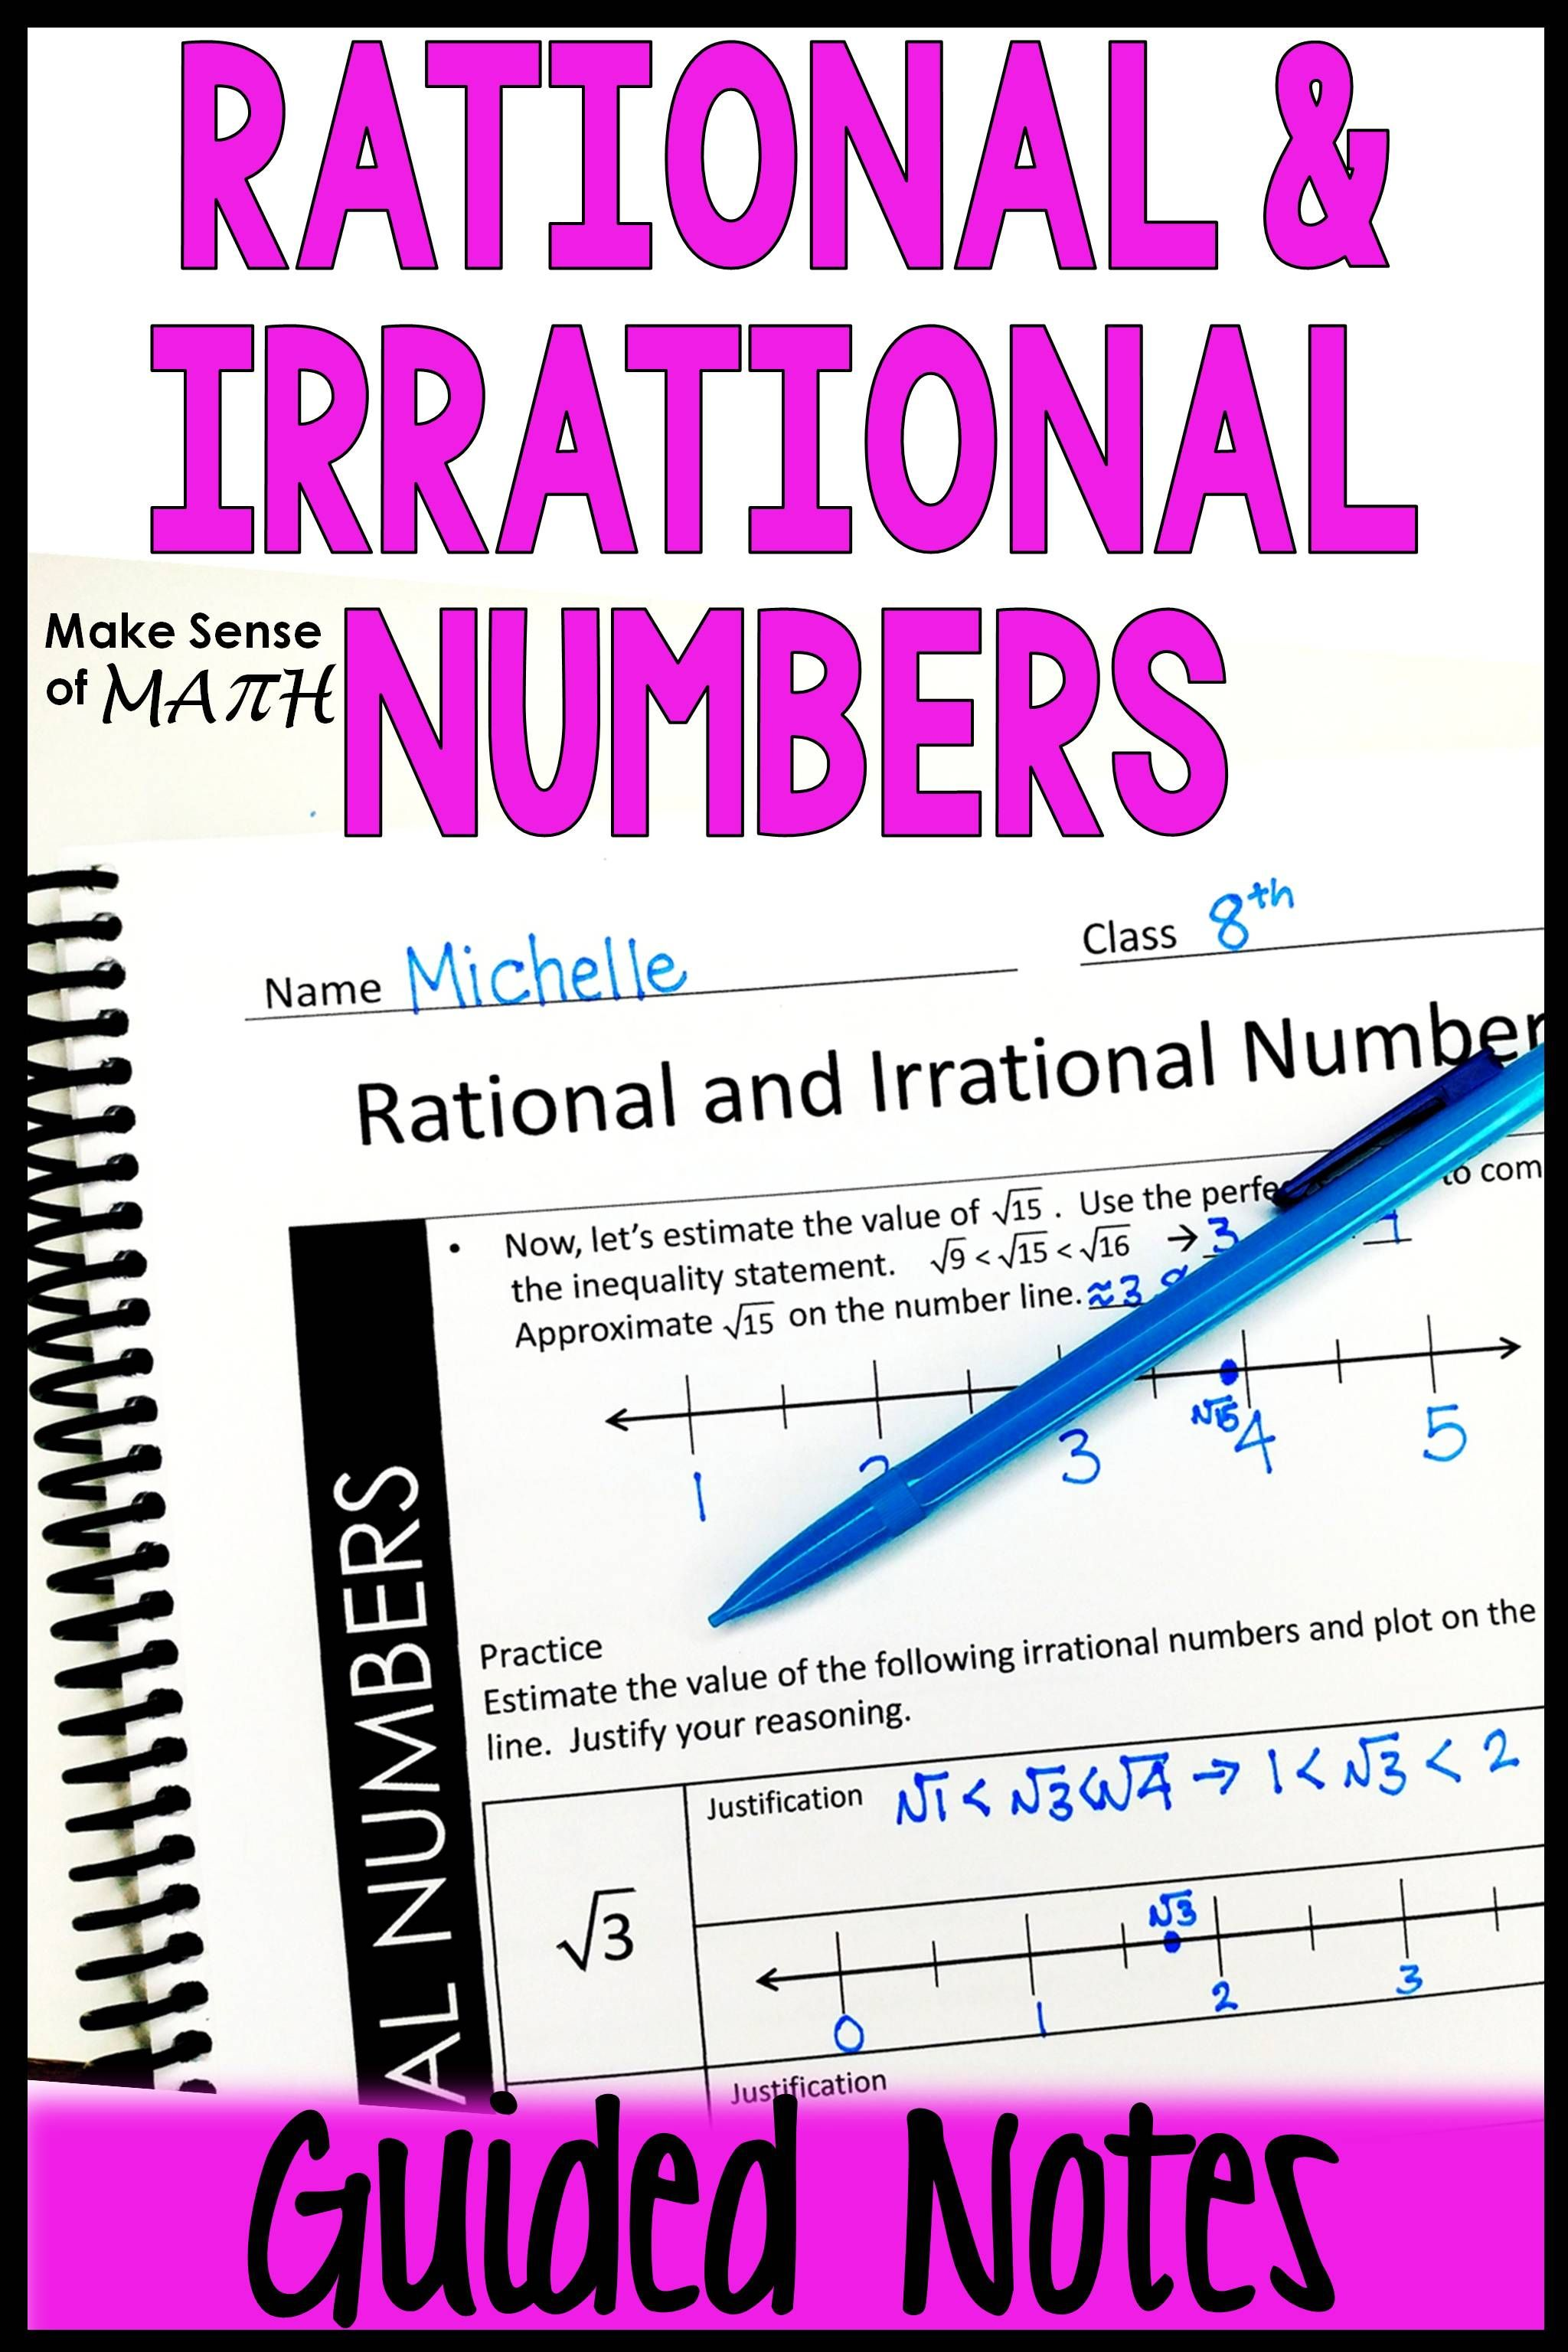 hight resolution of Rational and Irrational Numbers Notes   Irrational numbers